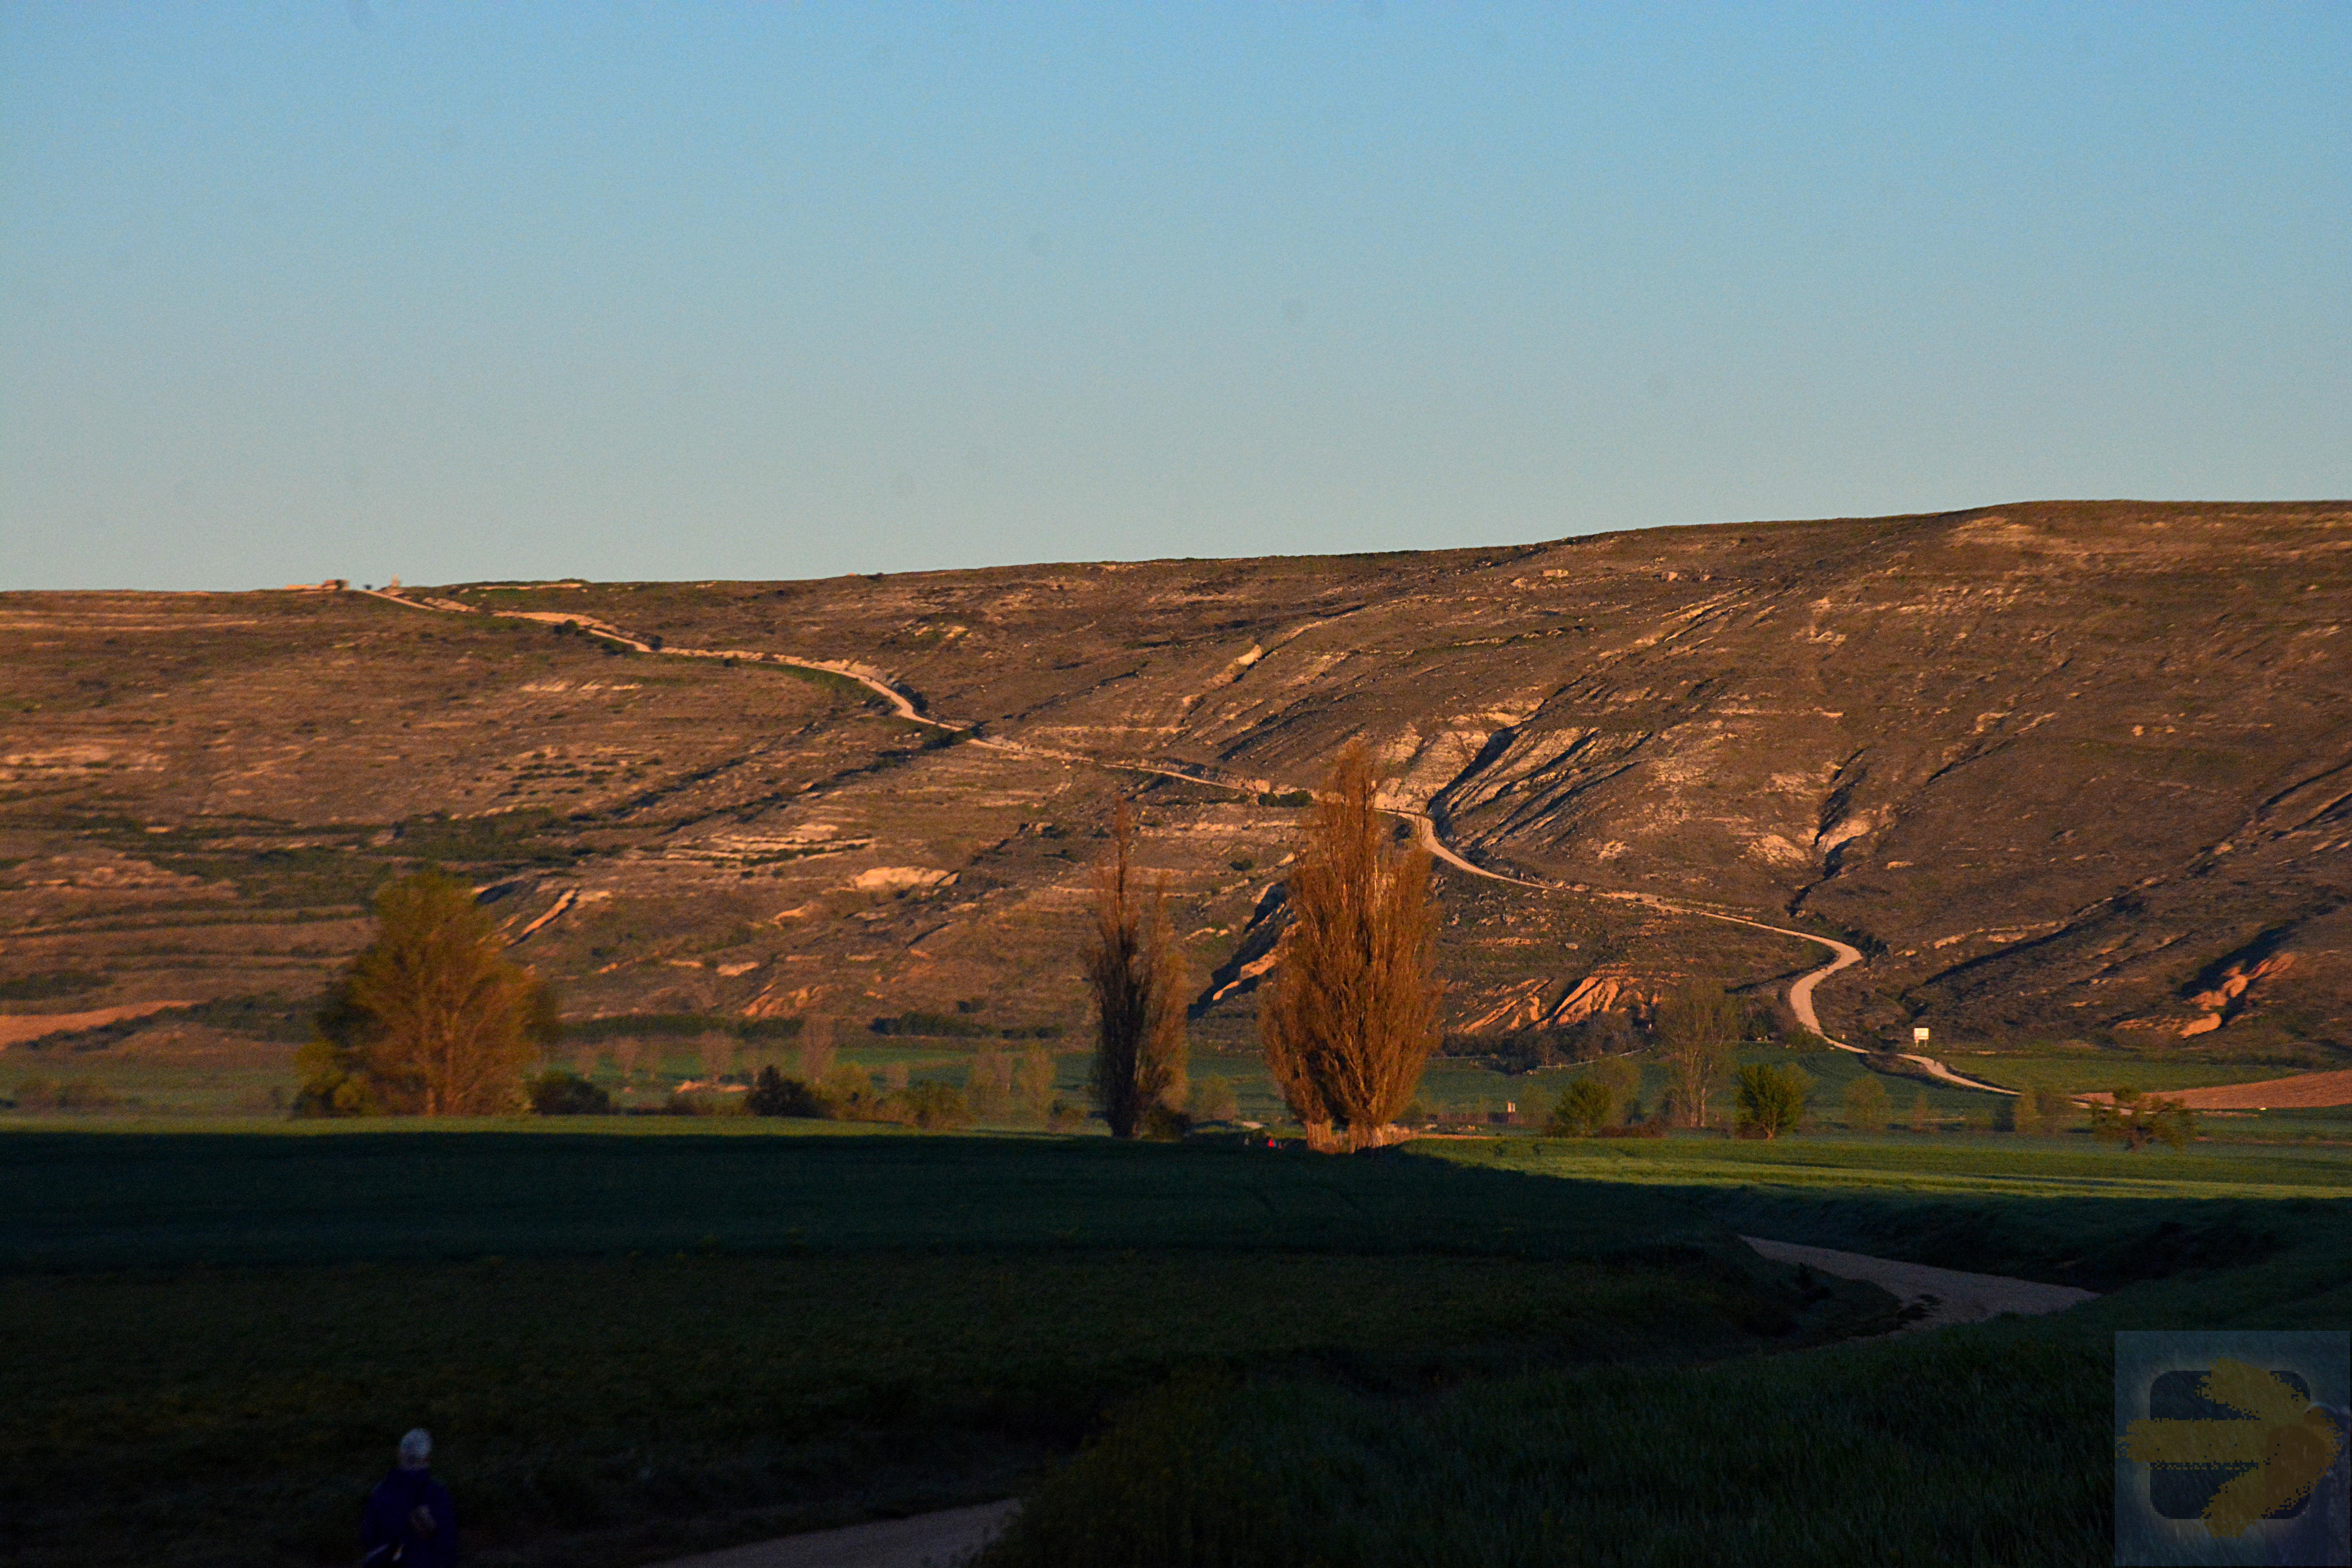 The climb up to the Meseta from Castrojerez - a great way to start the day!